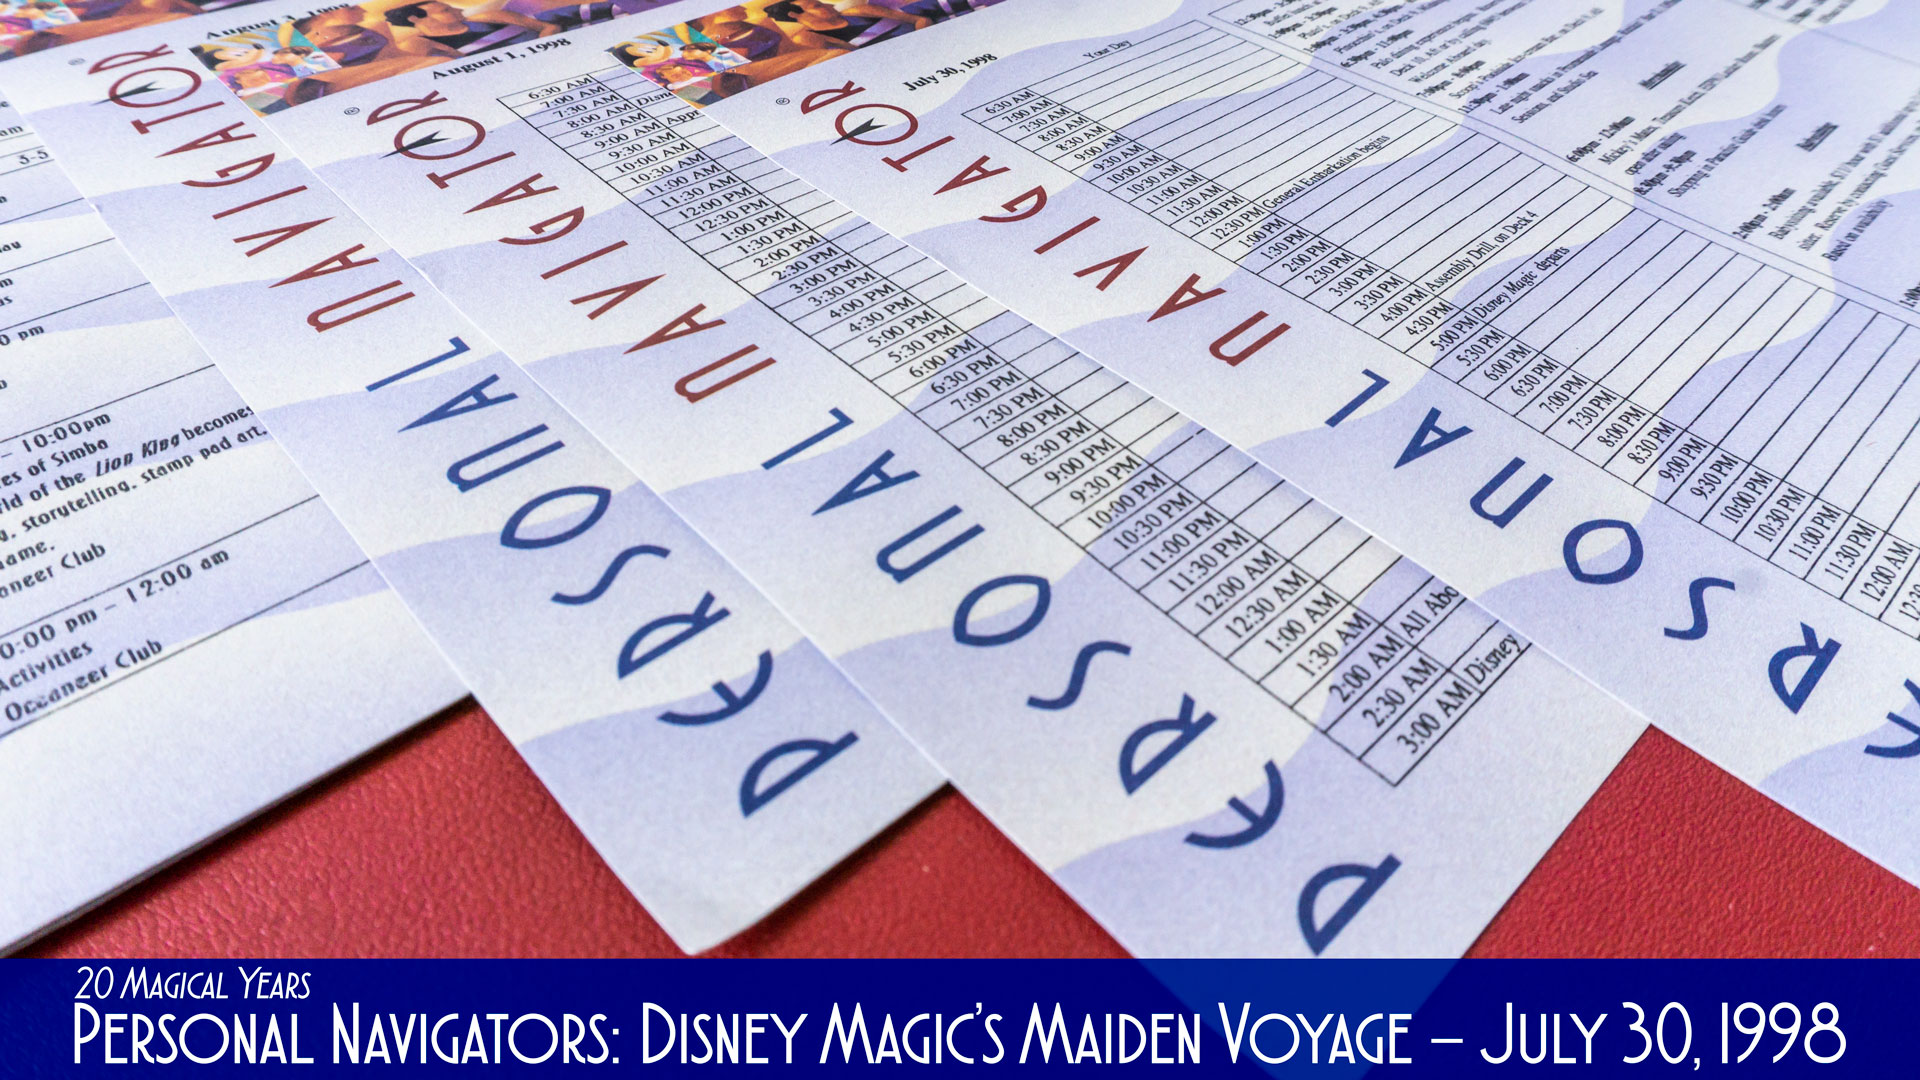 Disney Magic Maiden Voyage Personal Navigators